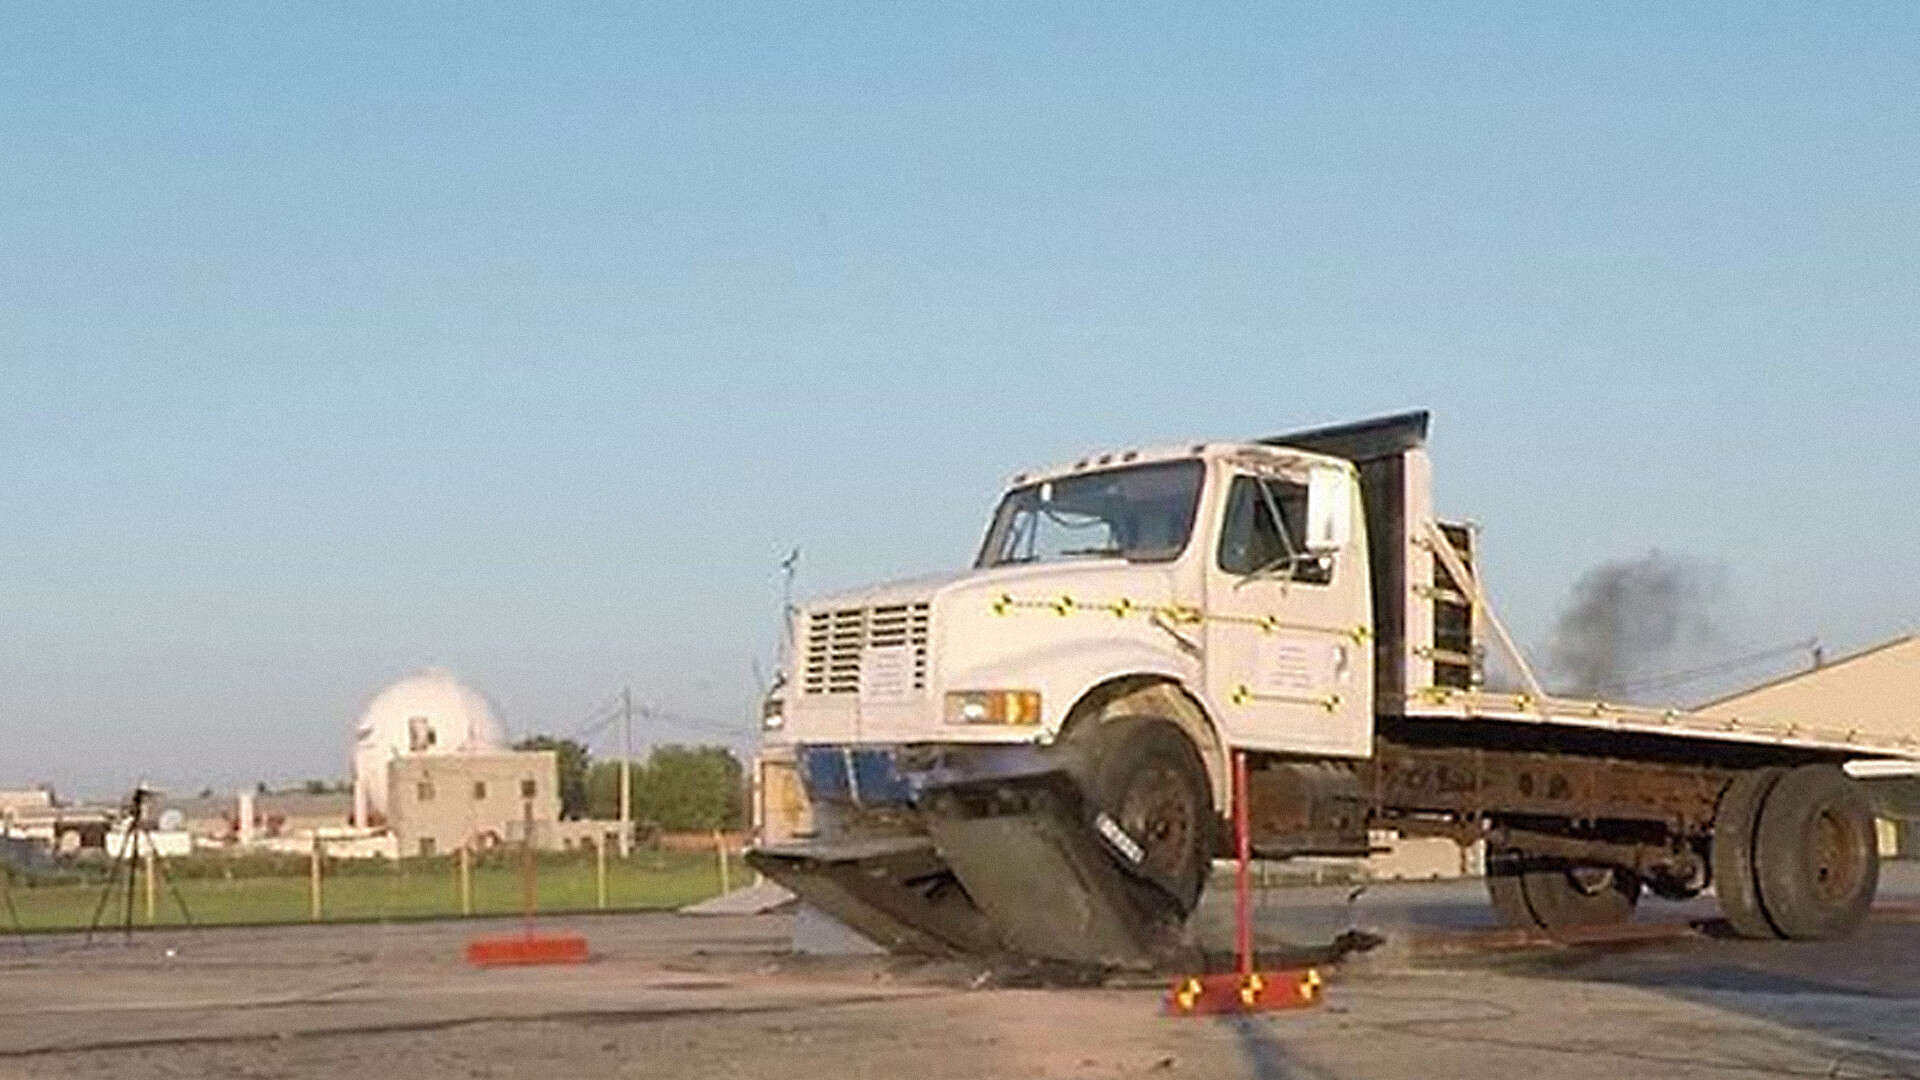 A truck before the impact with the pyramid barrier